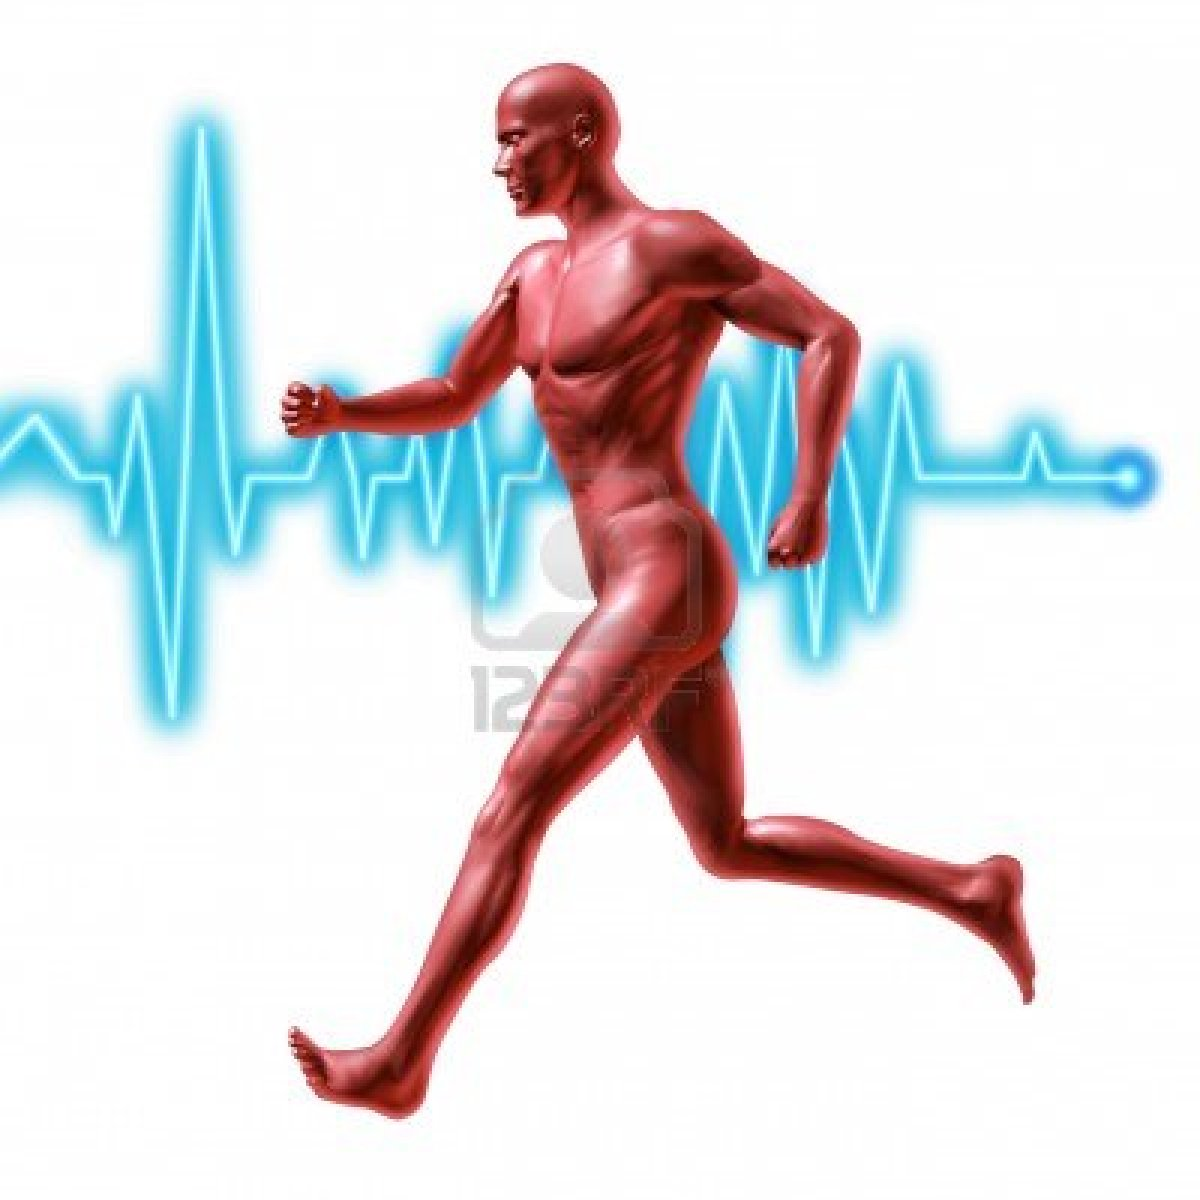 performance edge chiropractic pc  moderate physical activity associated with lower risk of heart